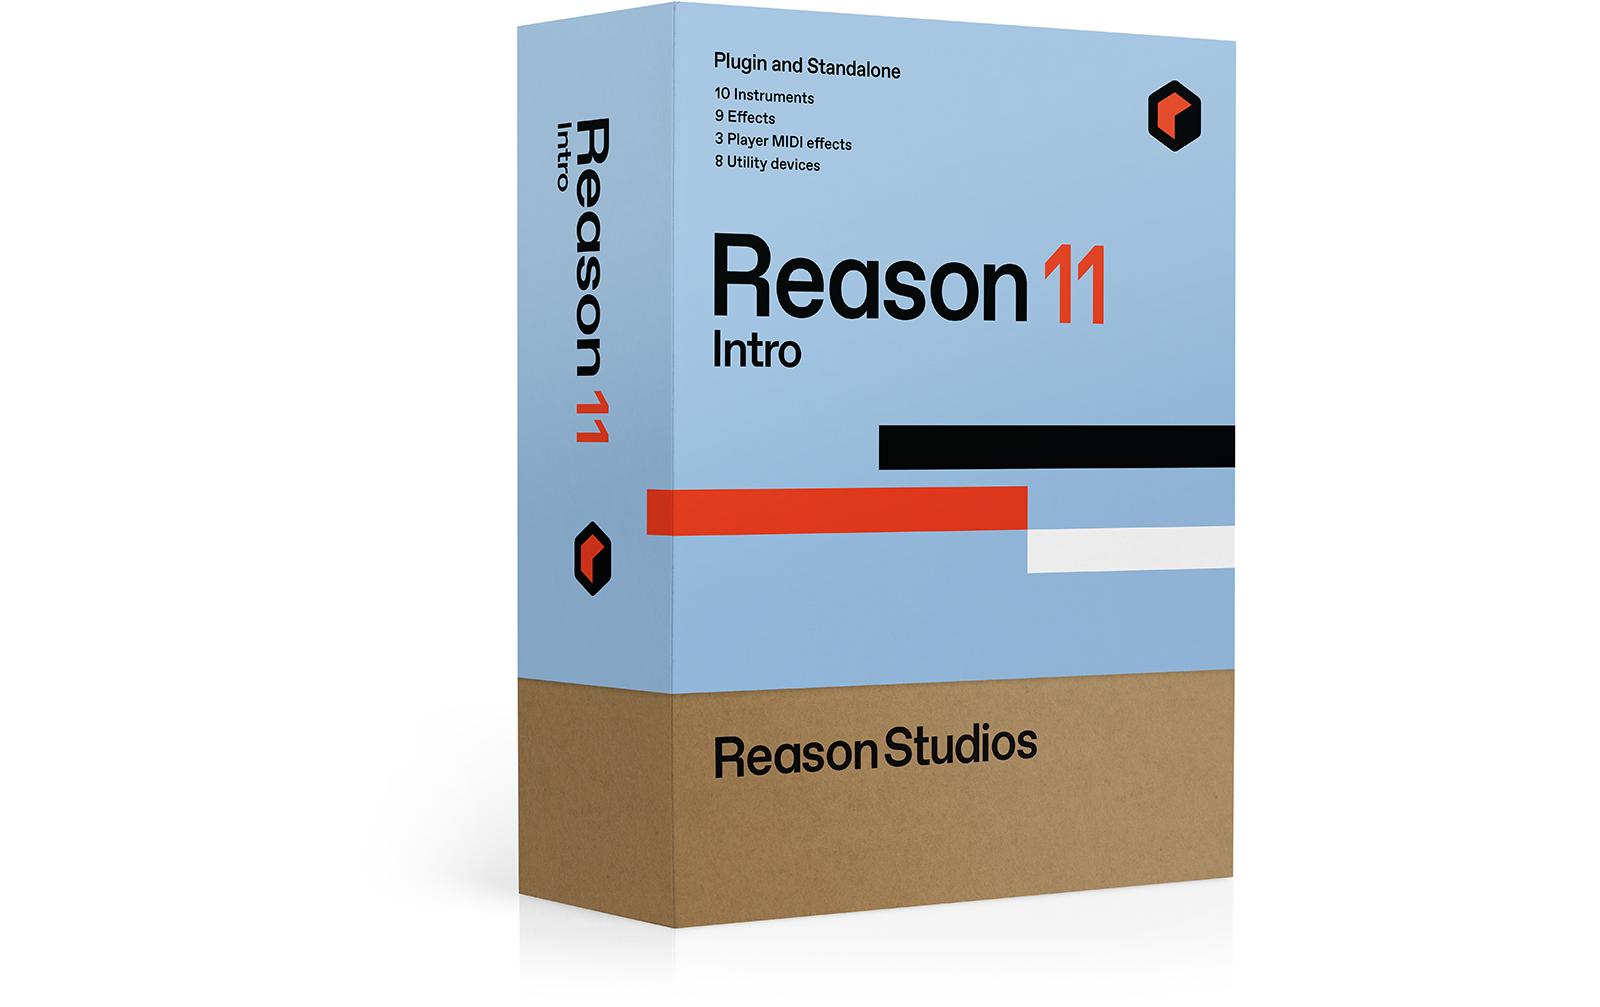 reason-studios-reason-11-intro-box